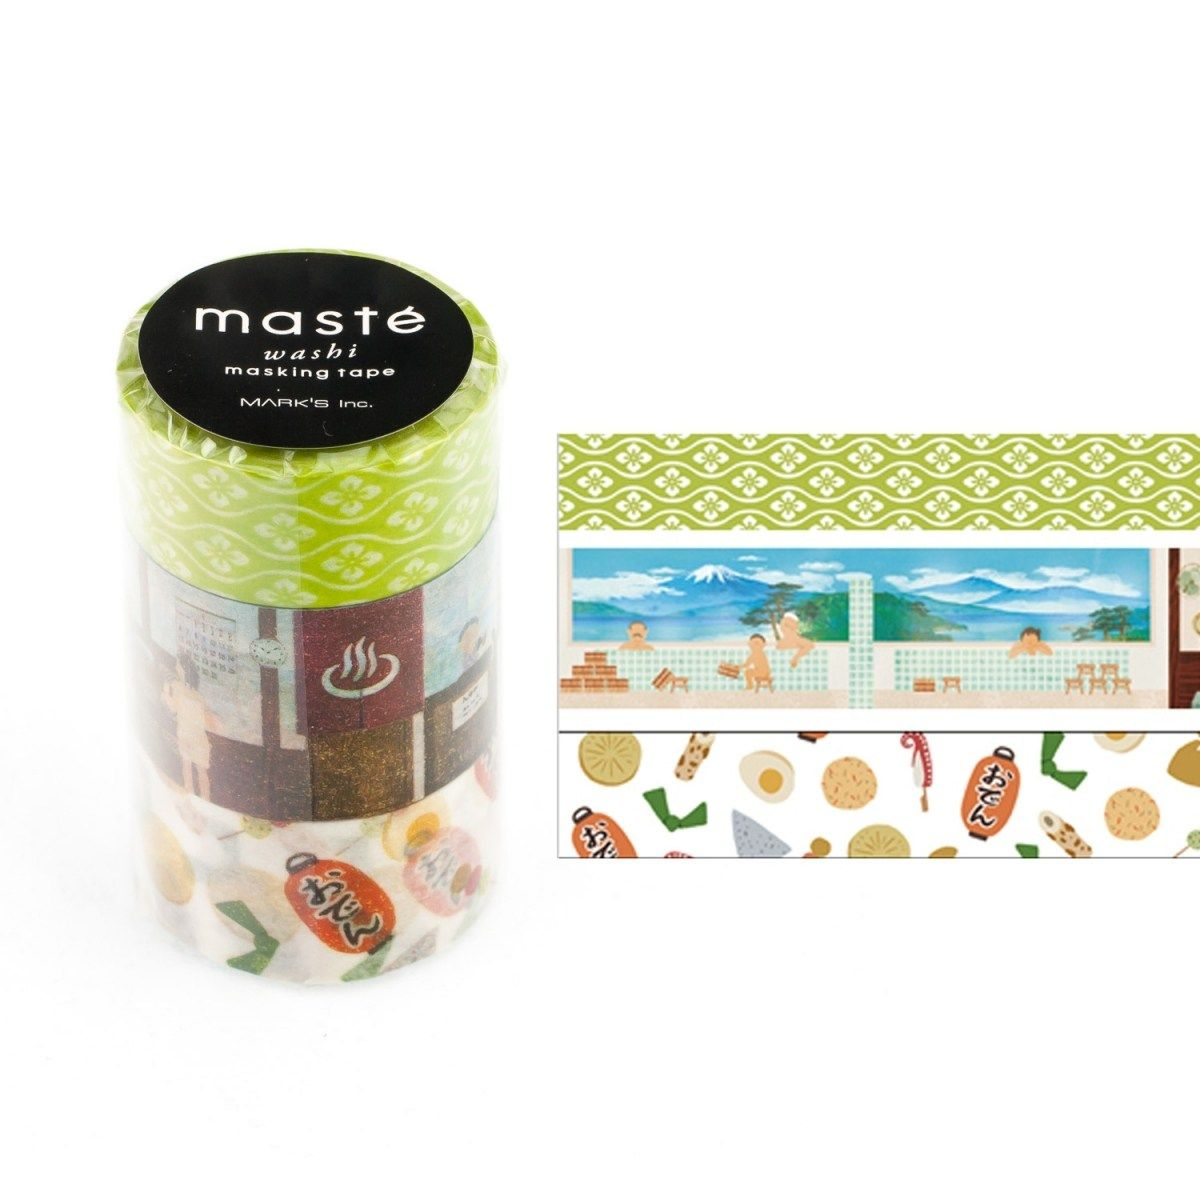 WASHI TAPE MASTÉ JAPAN 2.5 KIT C/ 3